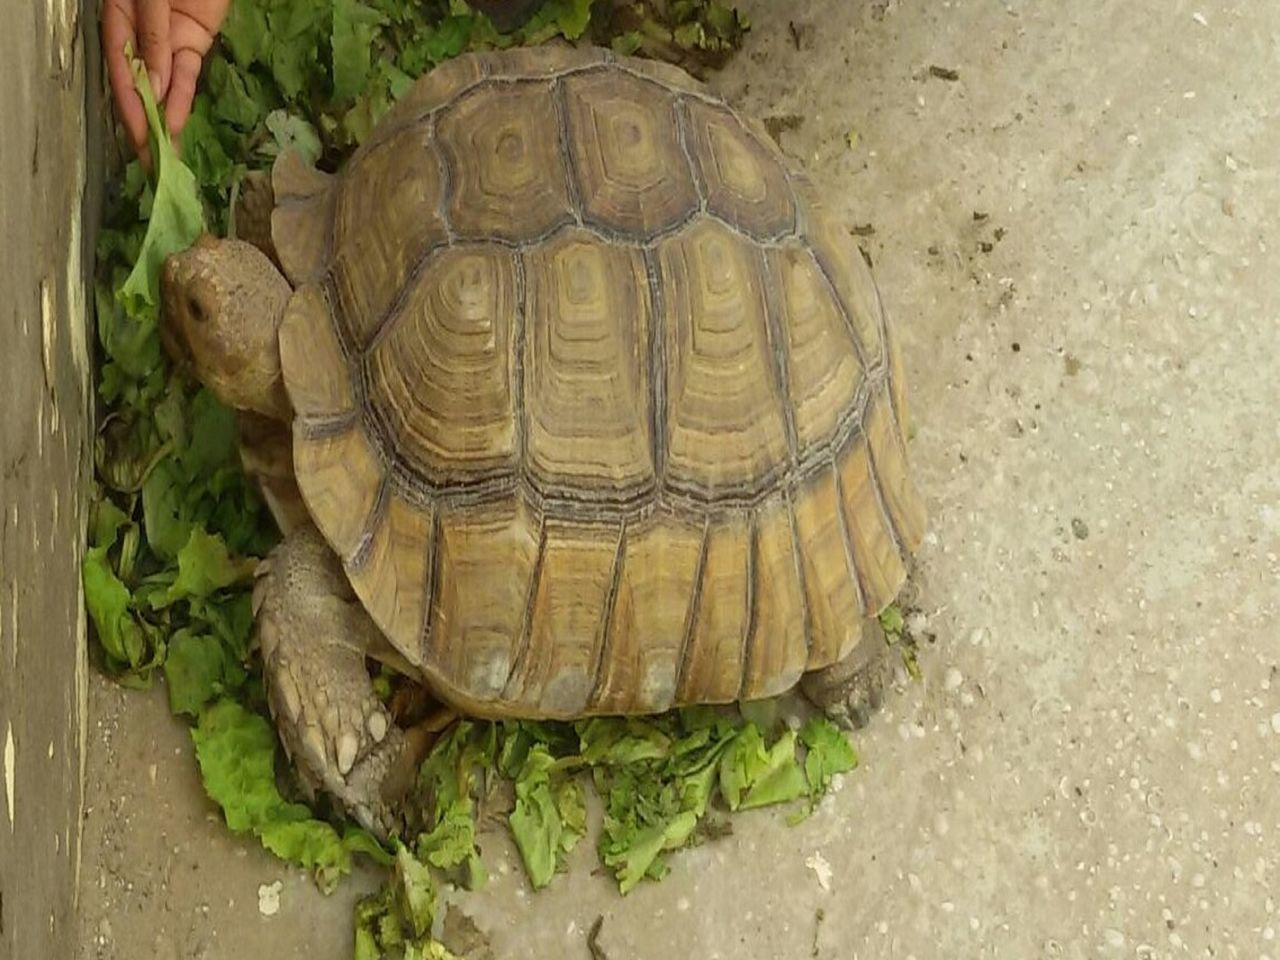 tortoise shell, reptile, tortoise, animal themes, no people, green color, pets, close-up, outdoors, day, nature